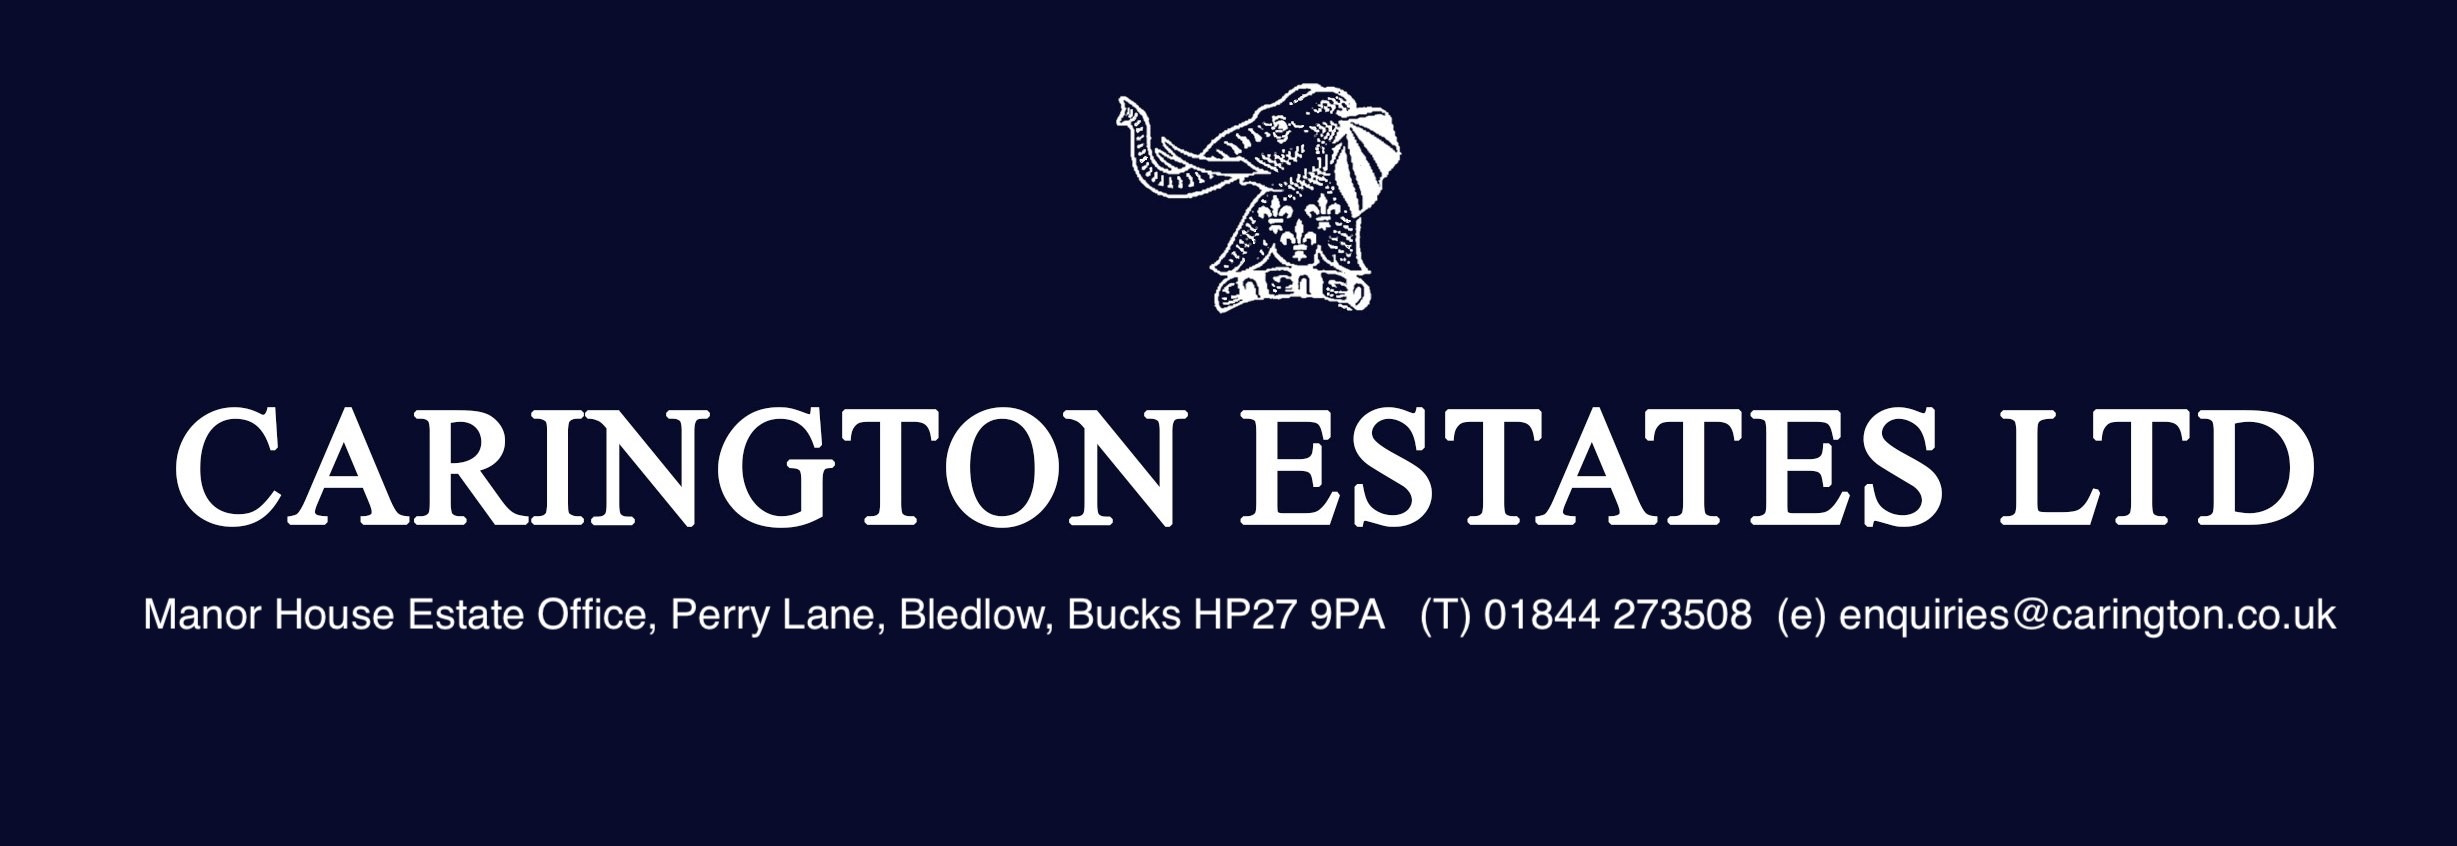 Carington Estates